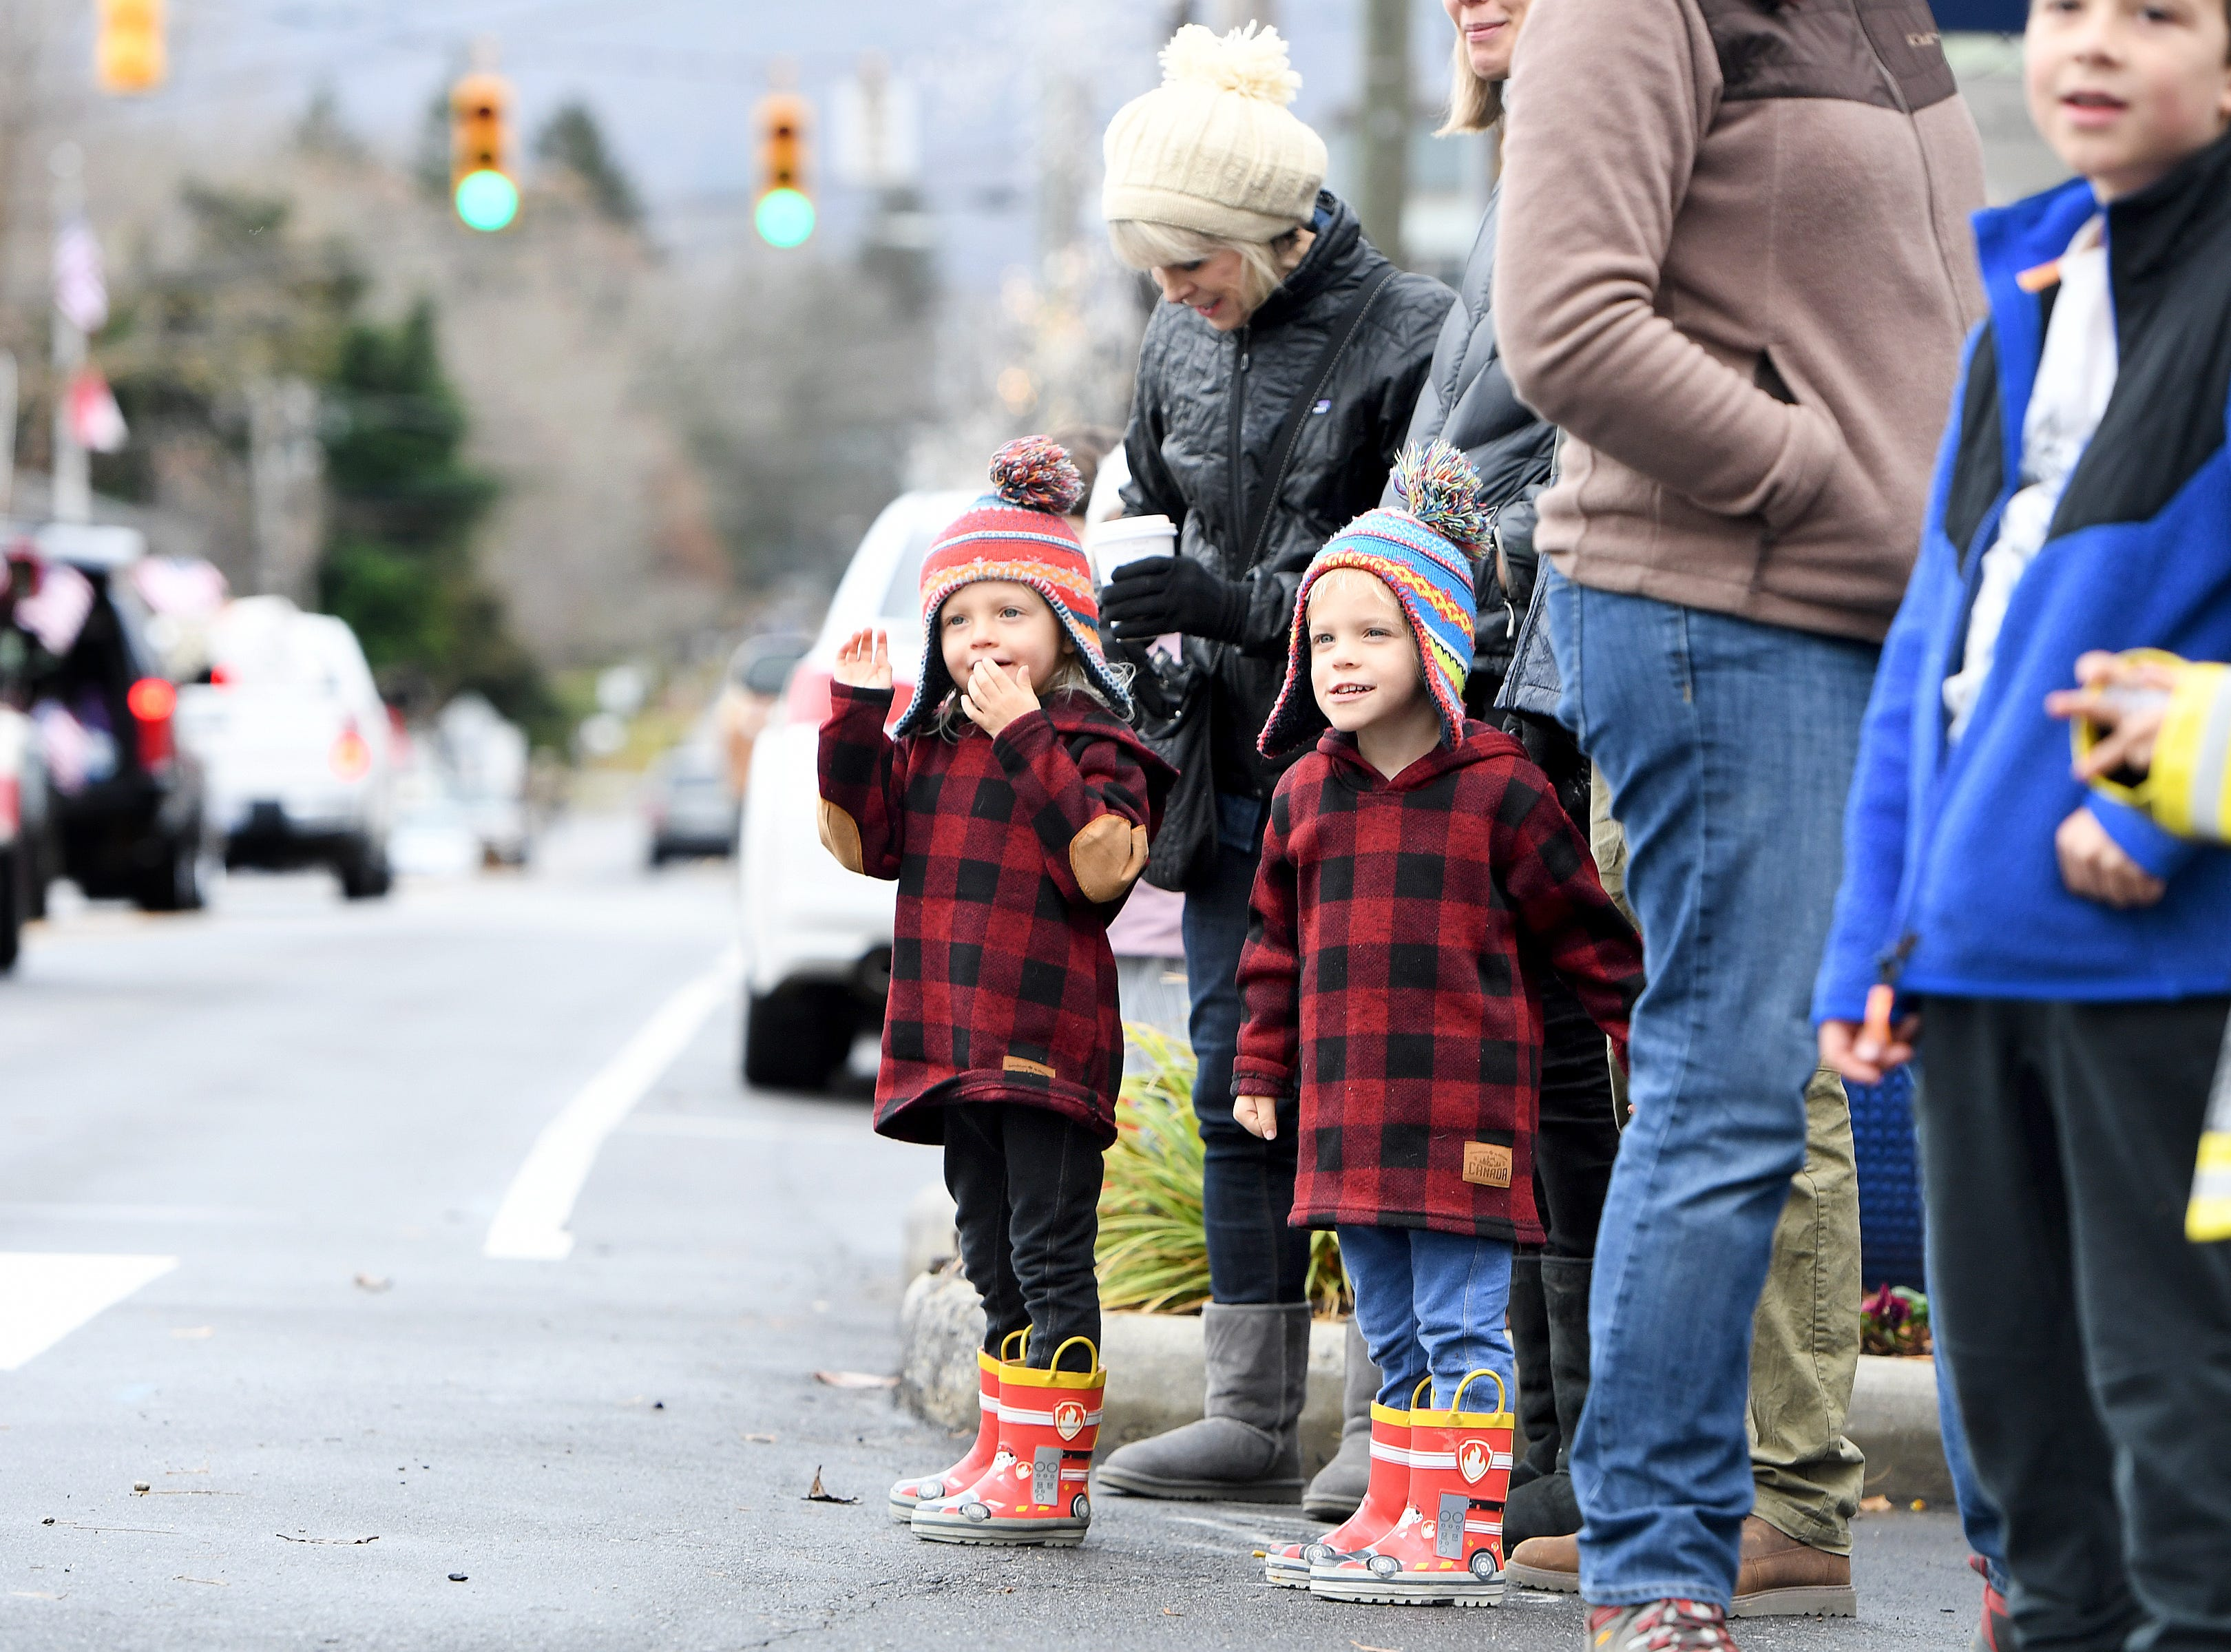 Three-year-old twins Harry, left, and Benny Eichelman wave to people in vehicles as they parade down Main Street in the Weaverville Christmas Parade on Dec. 1, 2018.